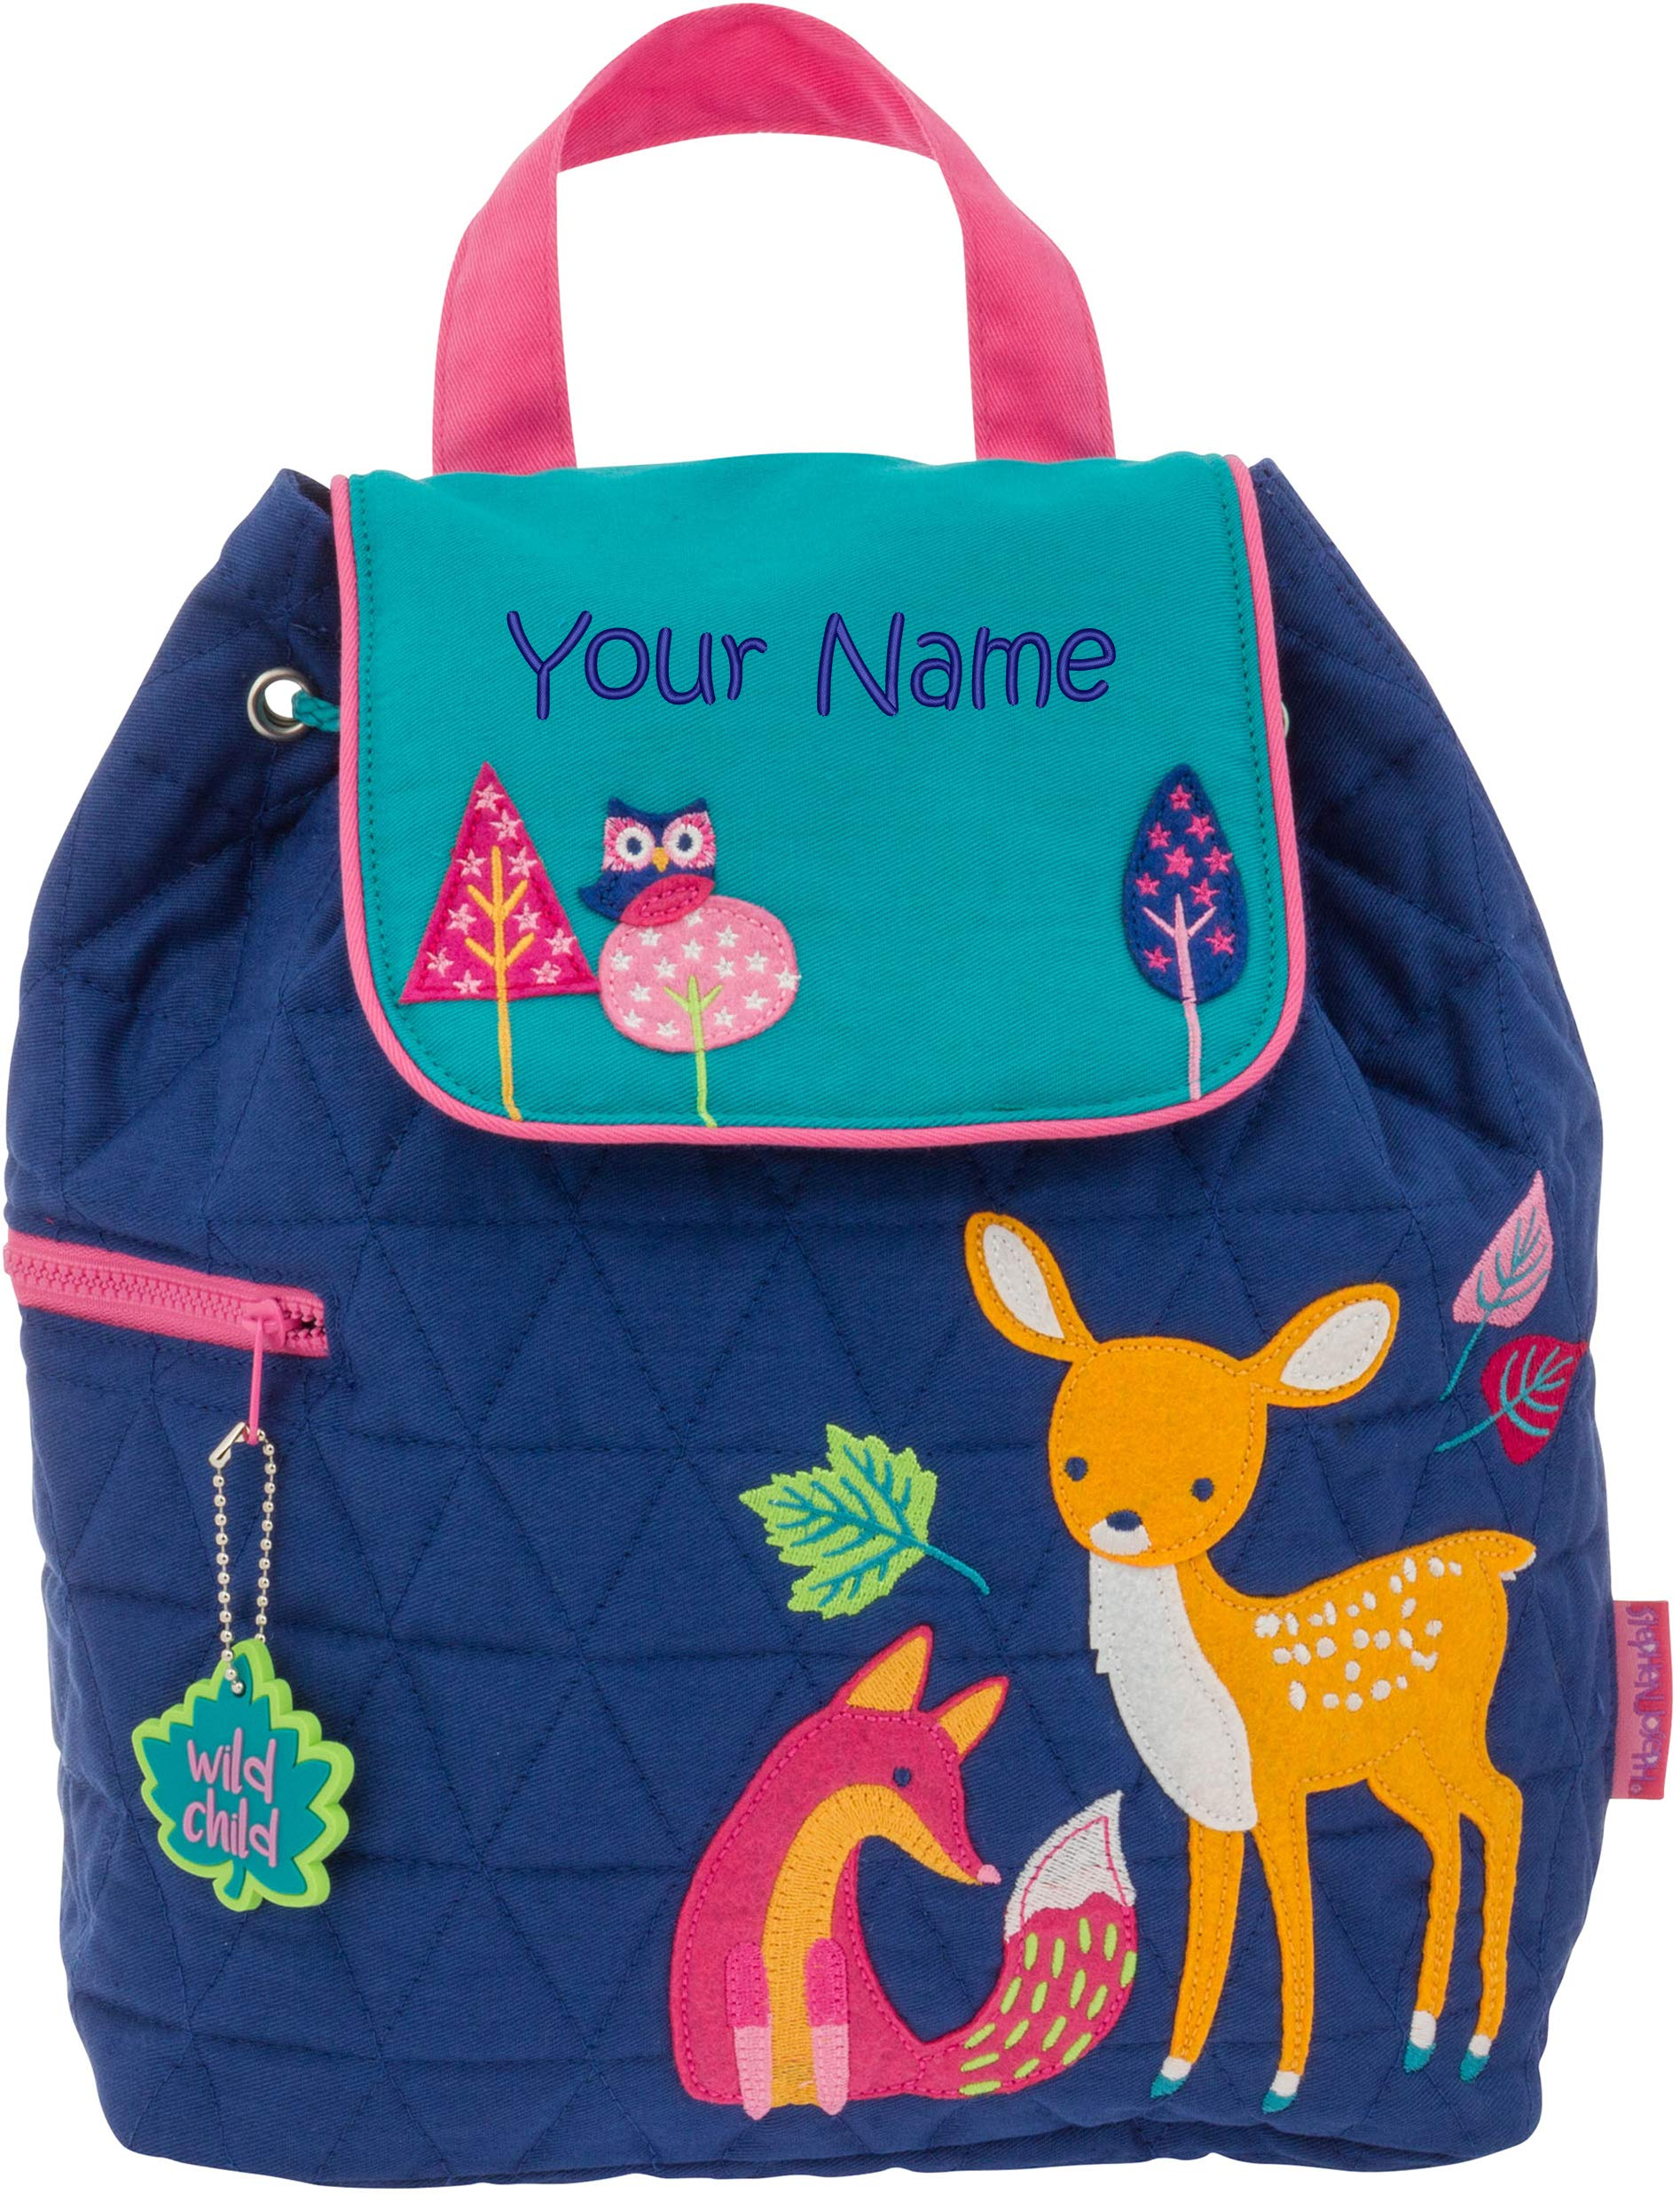 Personalized Stephen Joseph Woodland Quilted Backpack with Embroidered Name